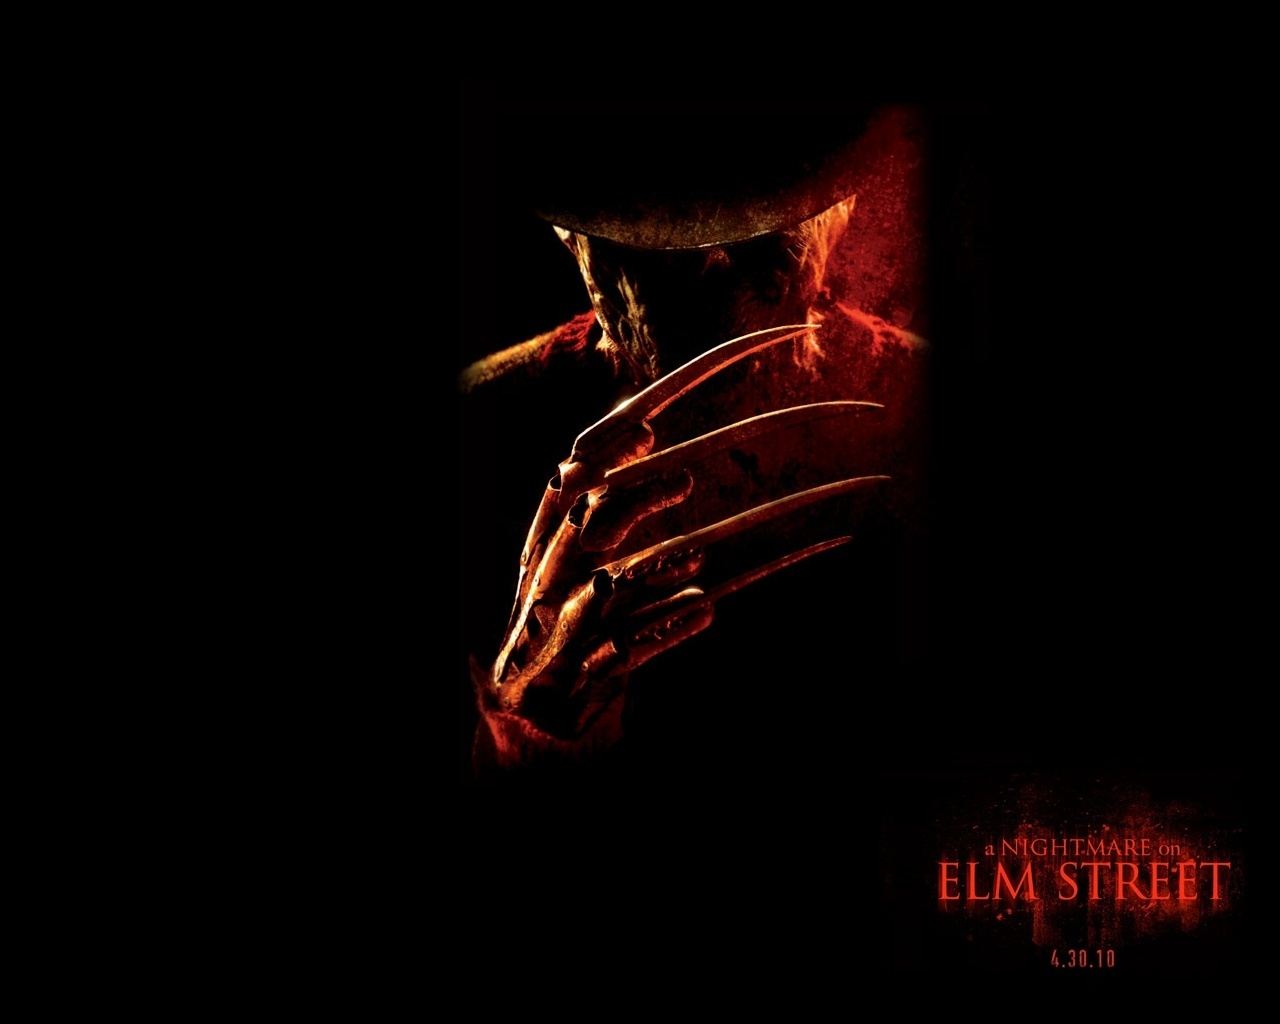 A Nightmare on Elm Street 2010 for 1280 x 1024 resolution